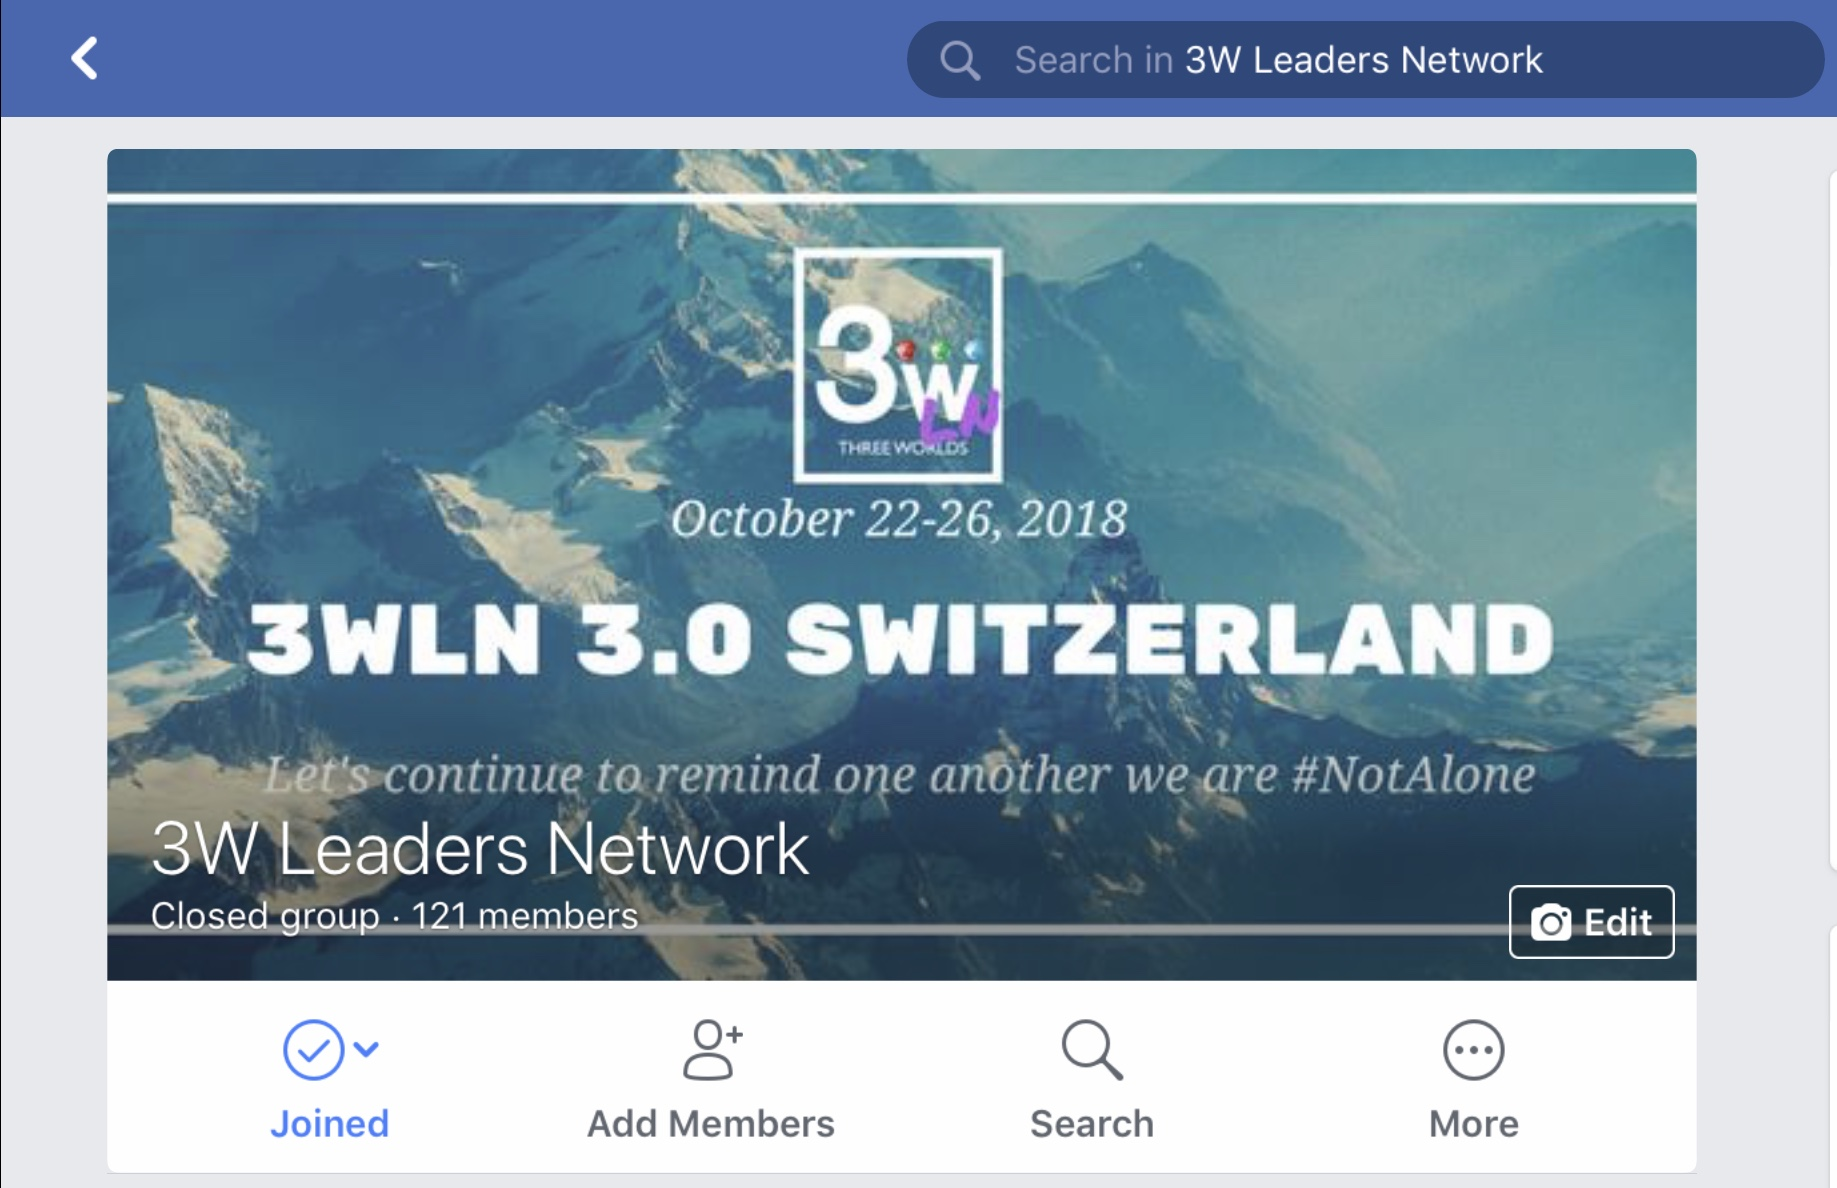 Also, if you have a Facebook Account make sure you join the 3W Leaders Network group.   https://www.facebook.com/groups/924426930958481/